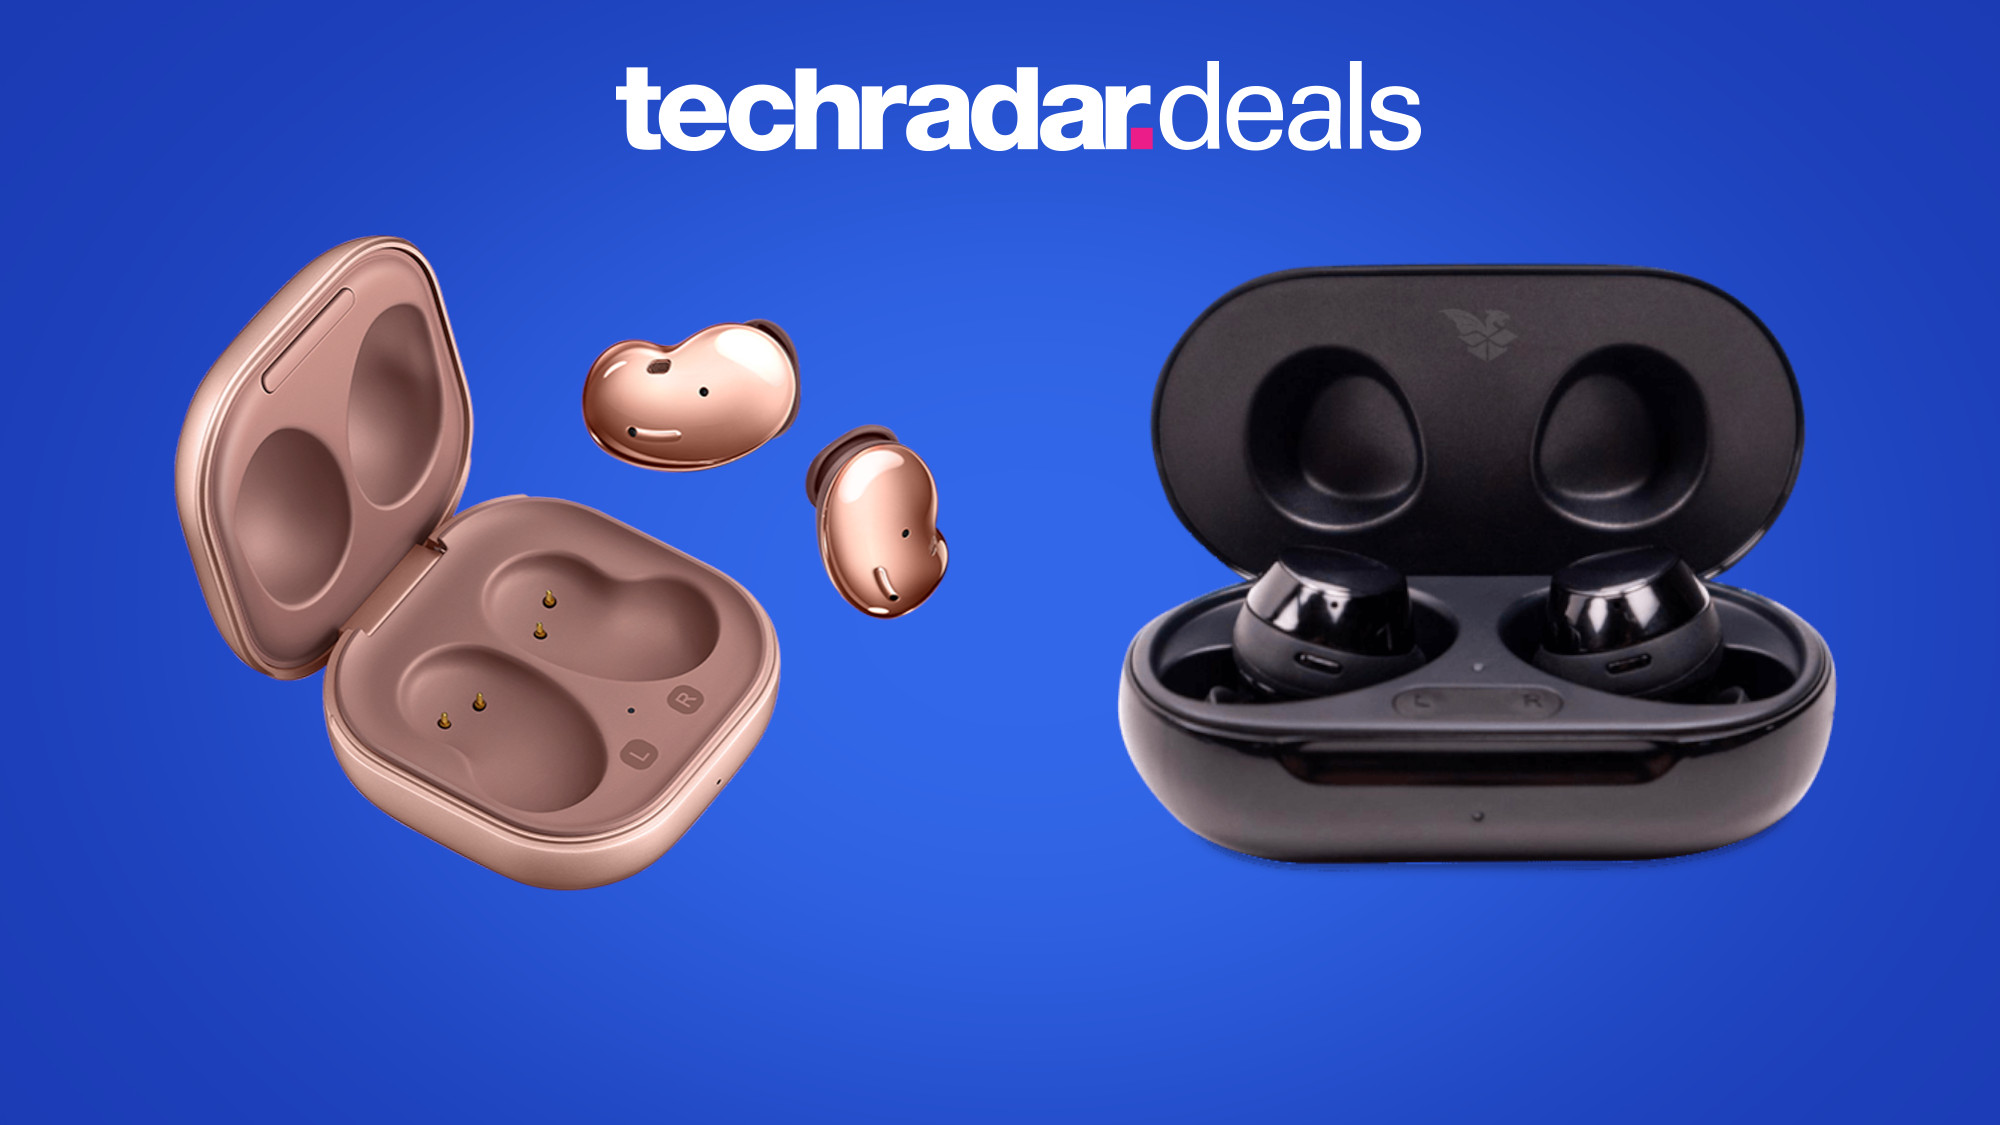 The cheapest Samsung Galaxy Buds prices and deals for August 2020